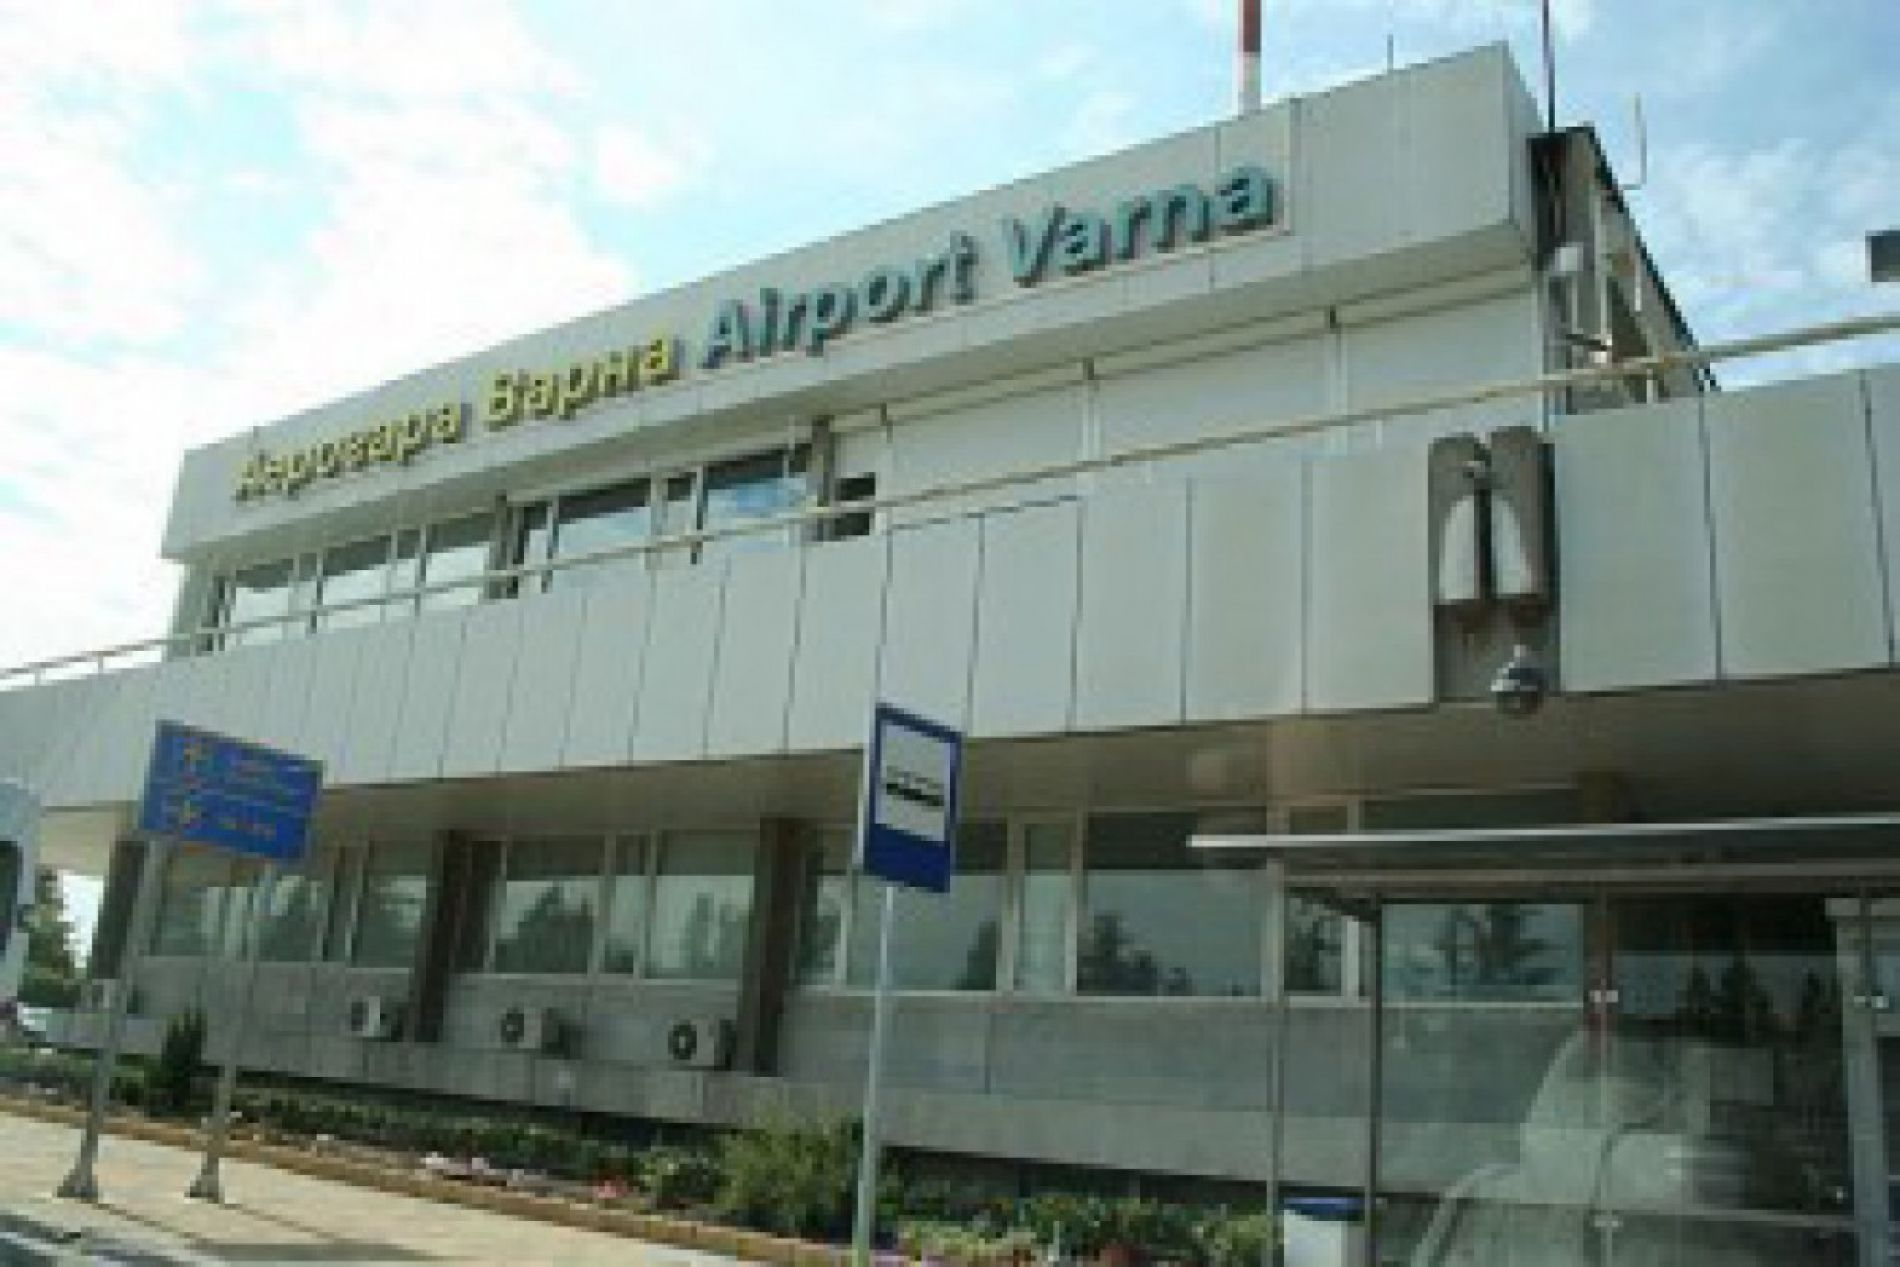 A new terminal has been opened at the airport of Varna